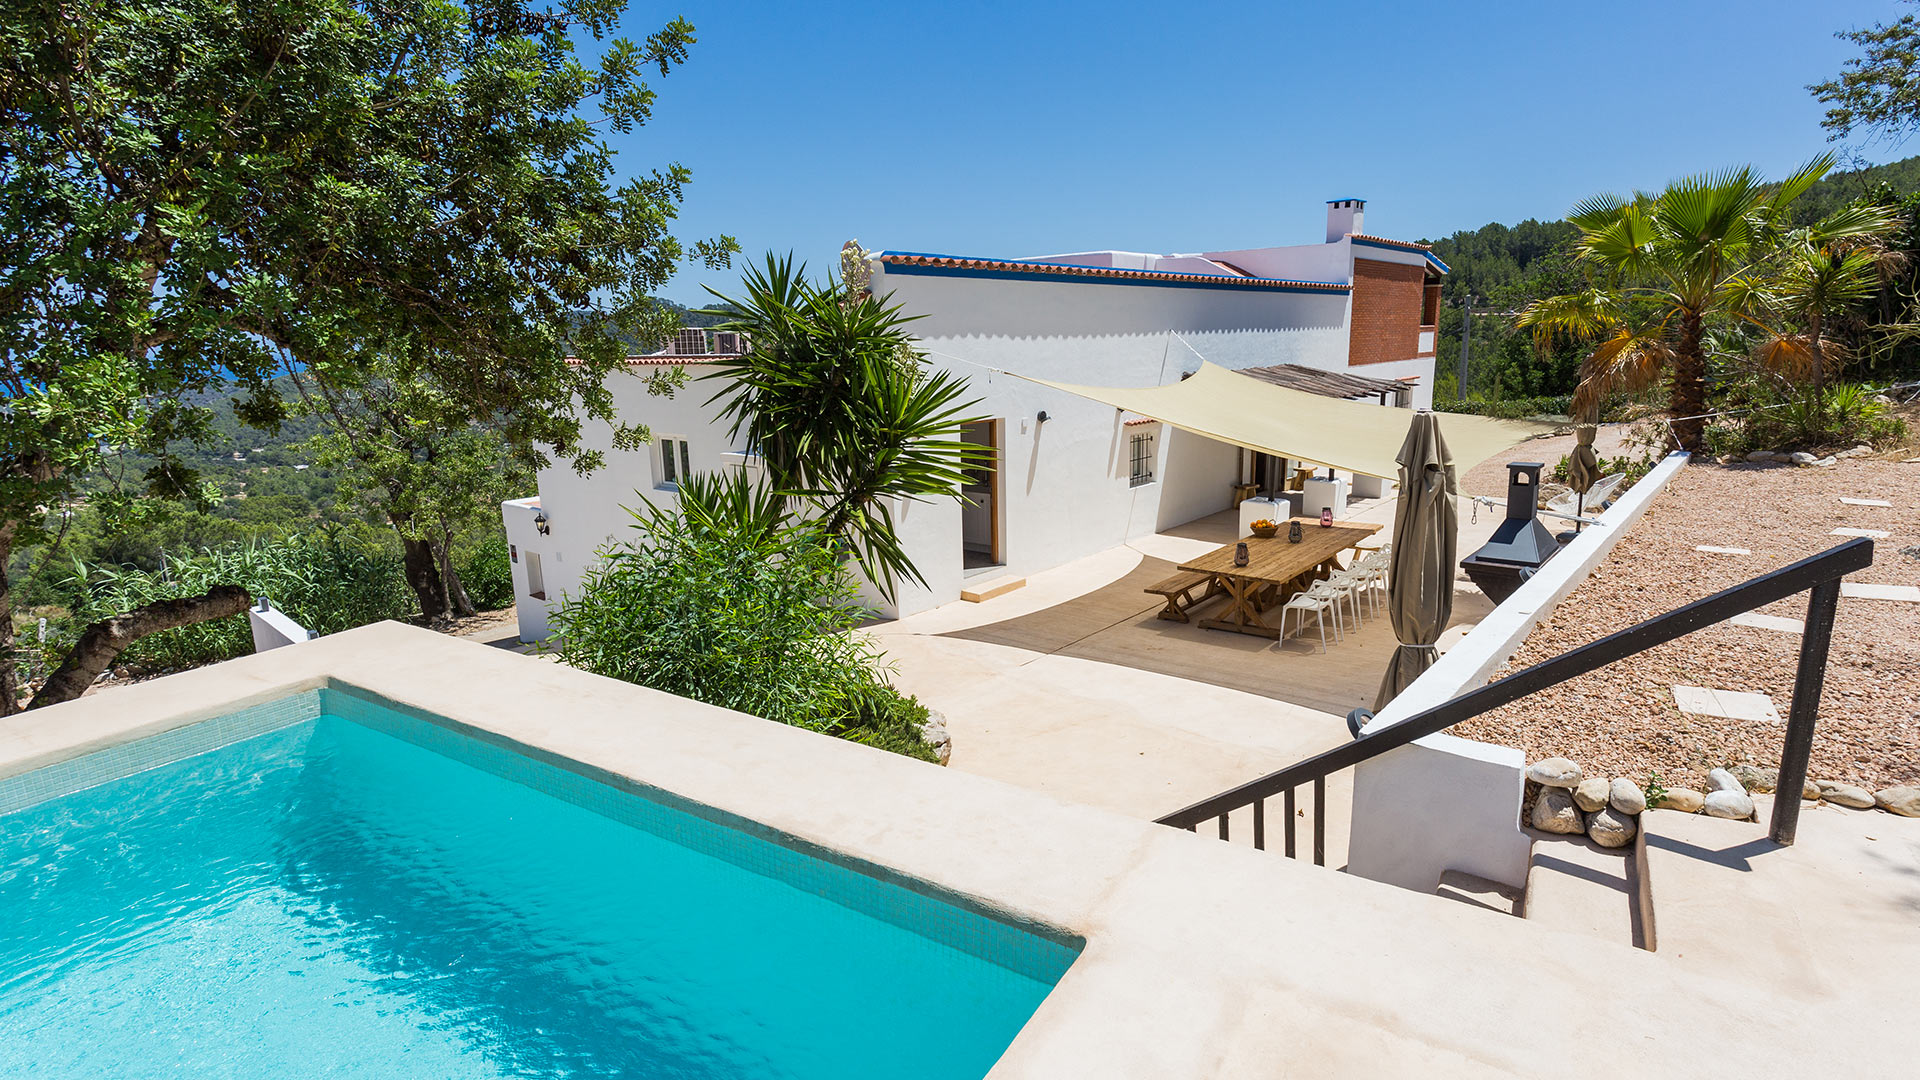 Villa Villa 960, Rental in Ibiza